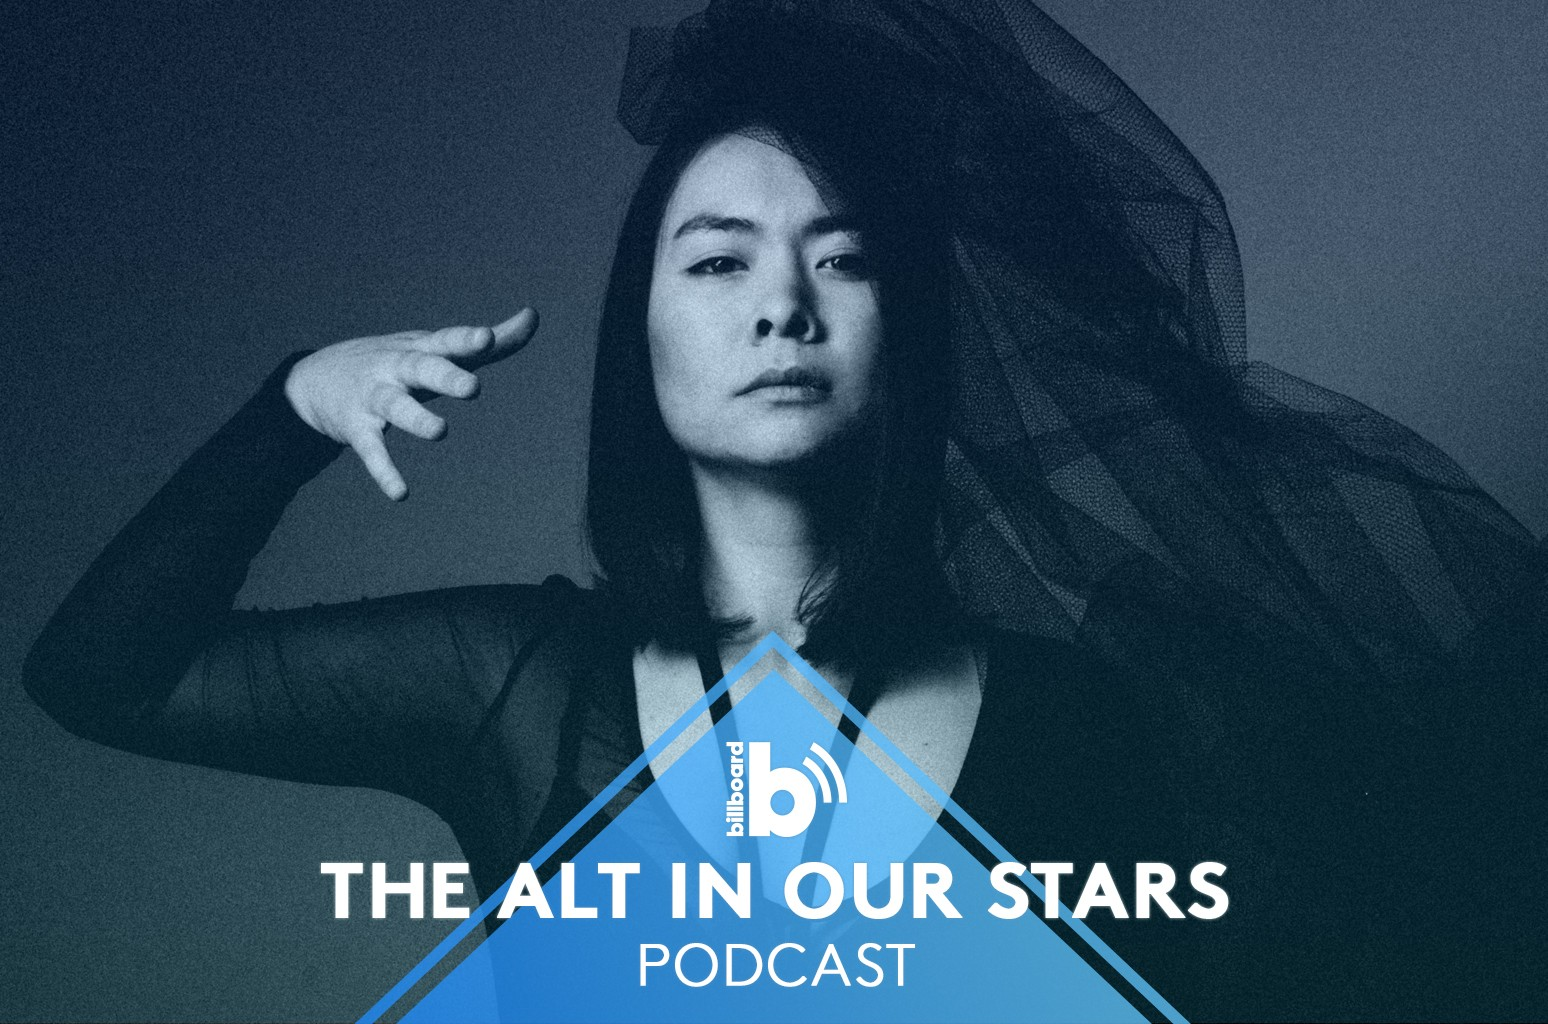 The Alt in Our Stars Podcast featuring: Mitski